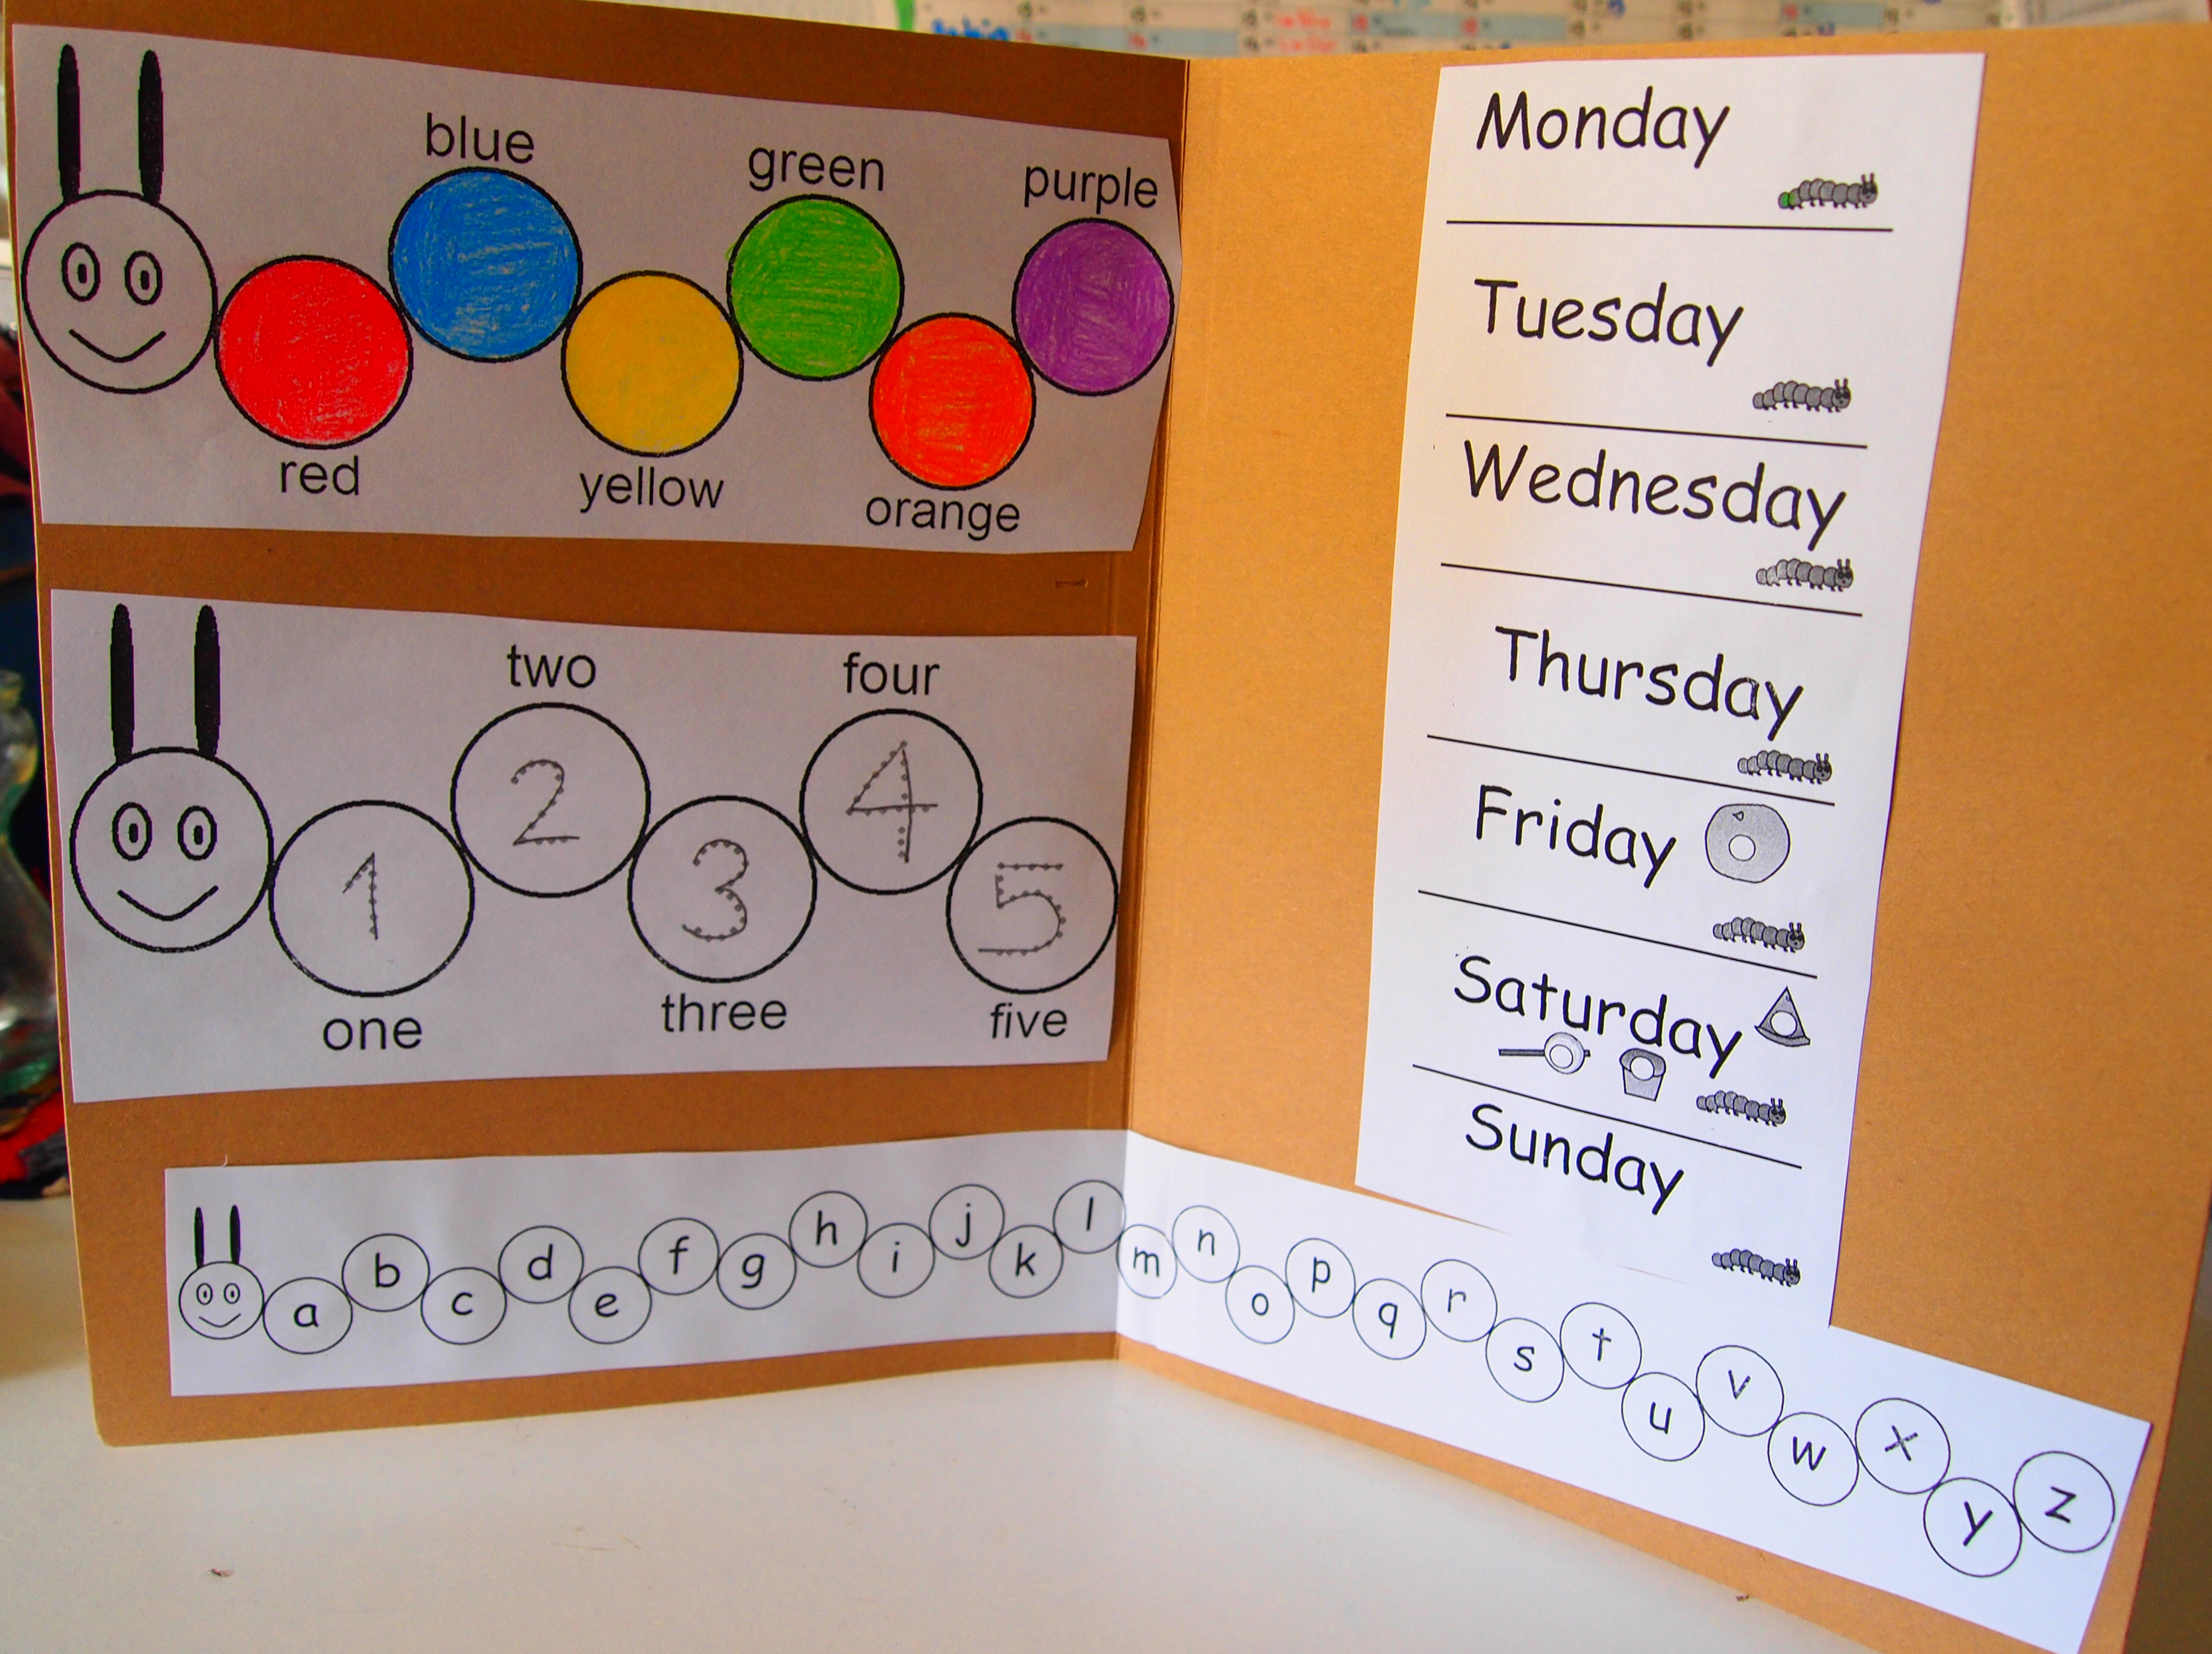 How To: Master Spelling or Sight Words: Cover-Copy-Compare